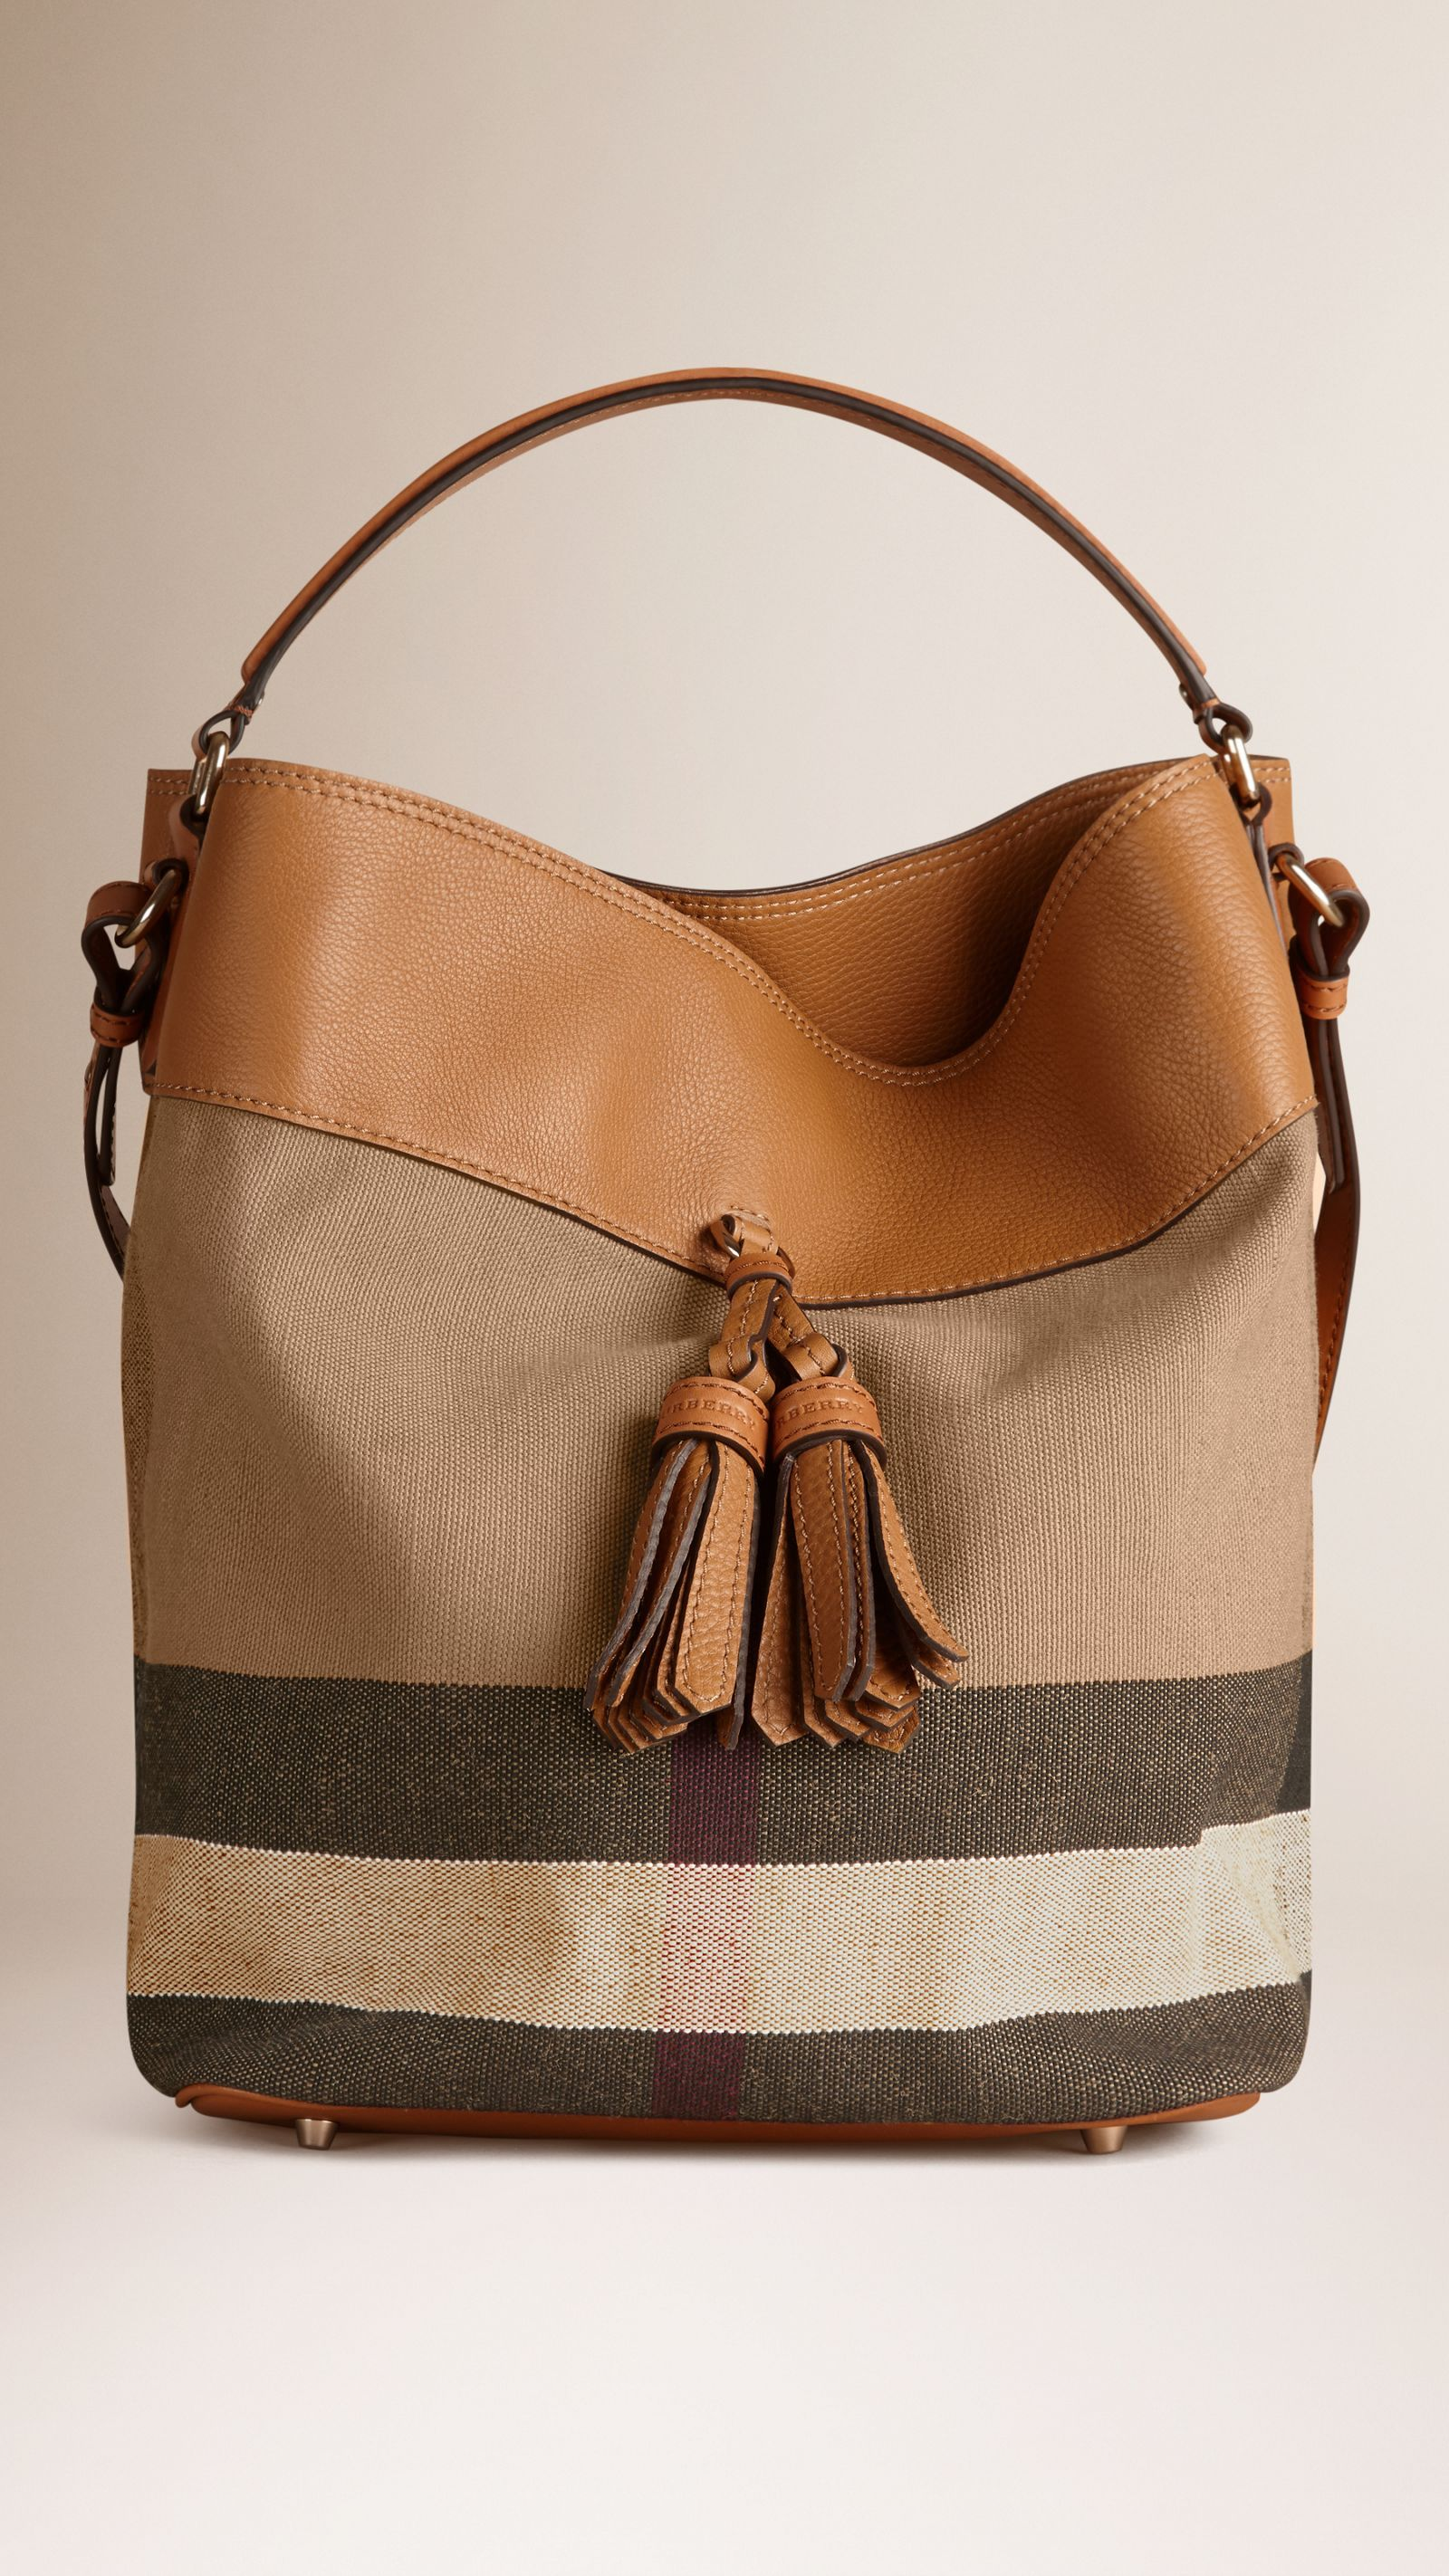 c1f6ab53c Women's Bags   Check, Leather & Tote Bags   Burberry in 2019   My ...